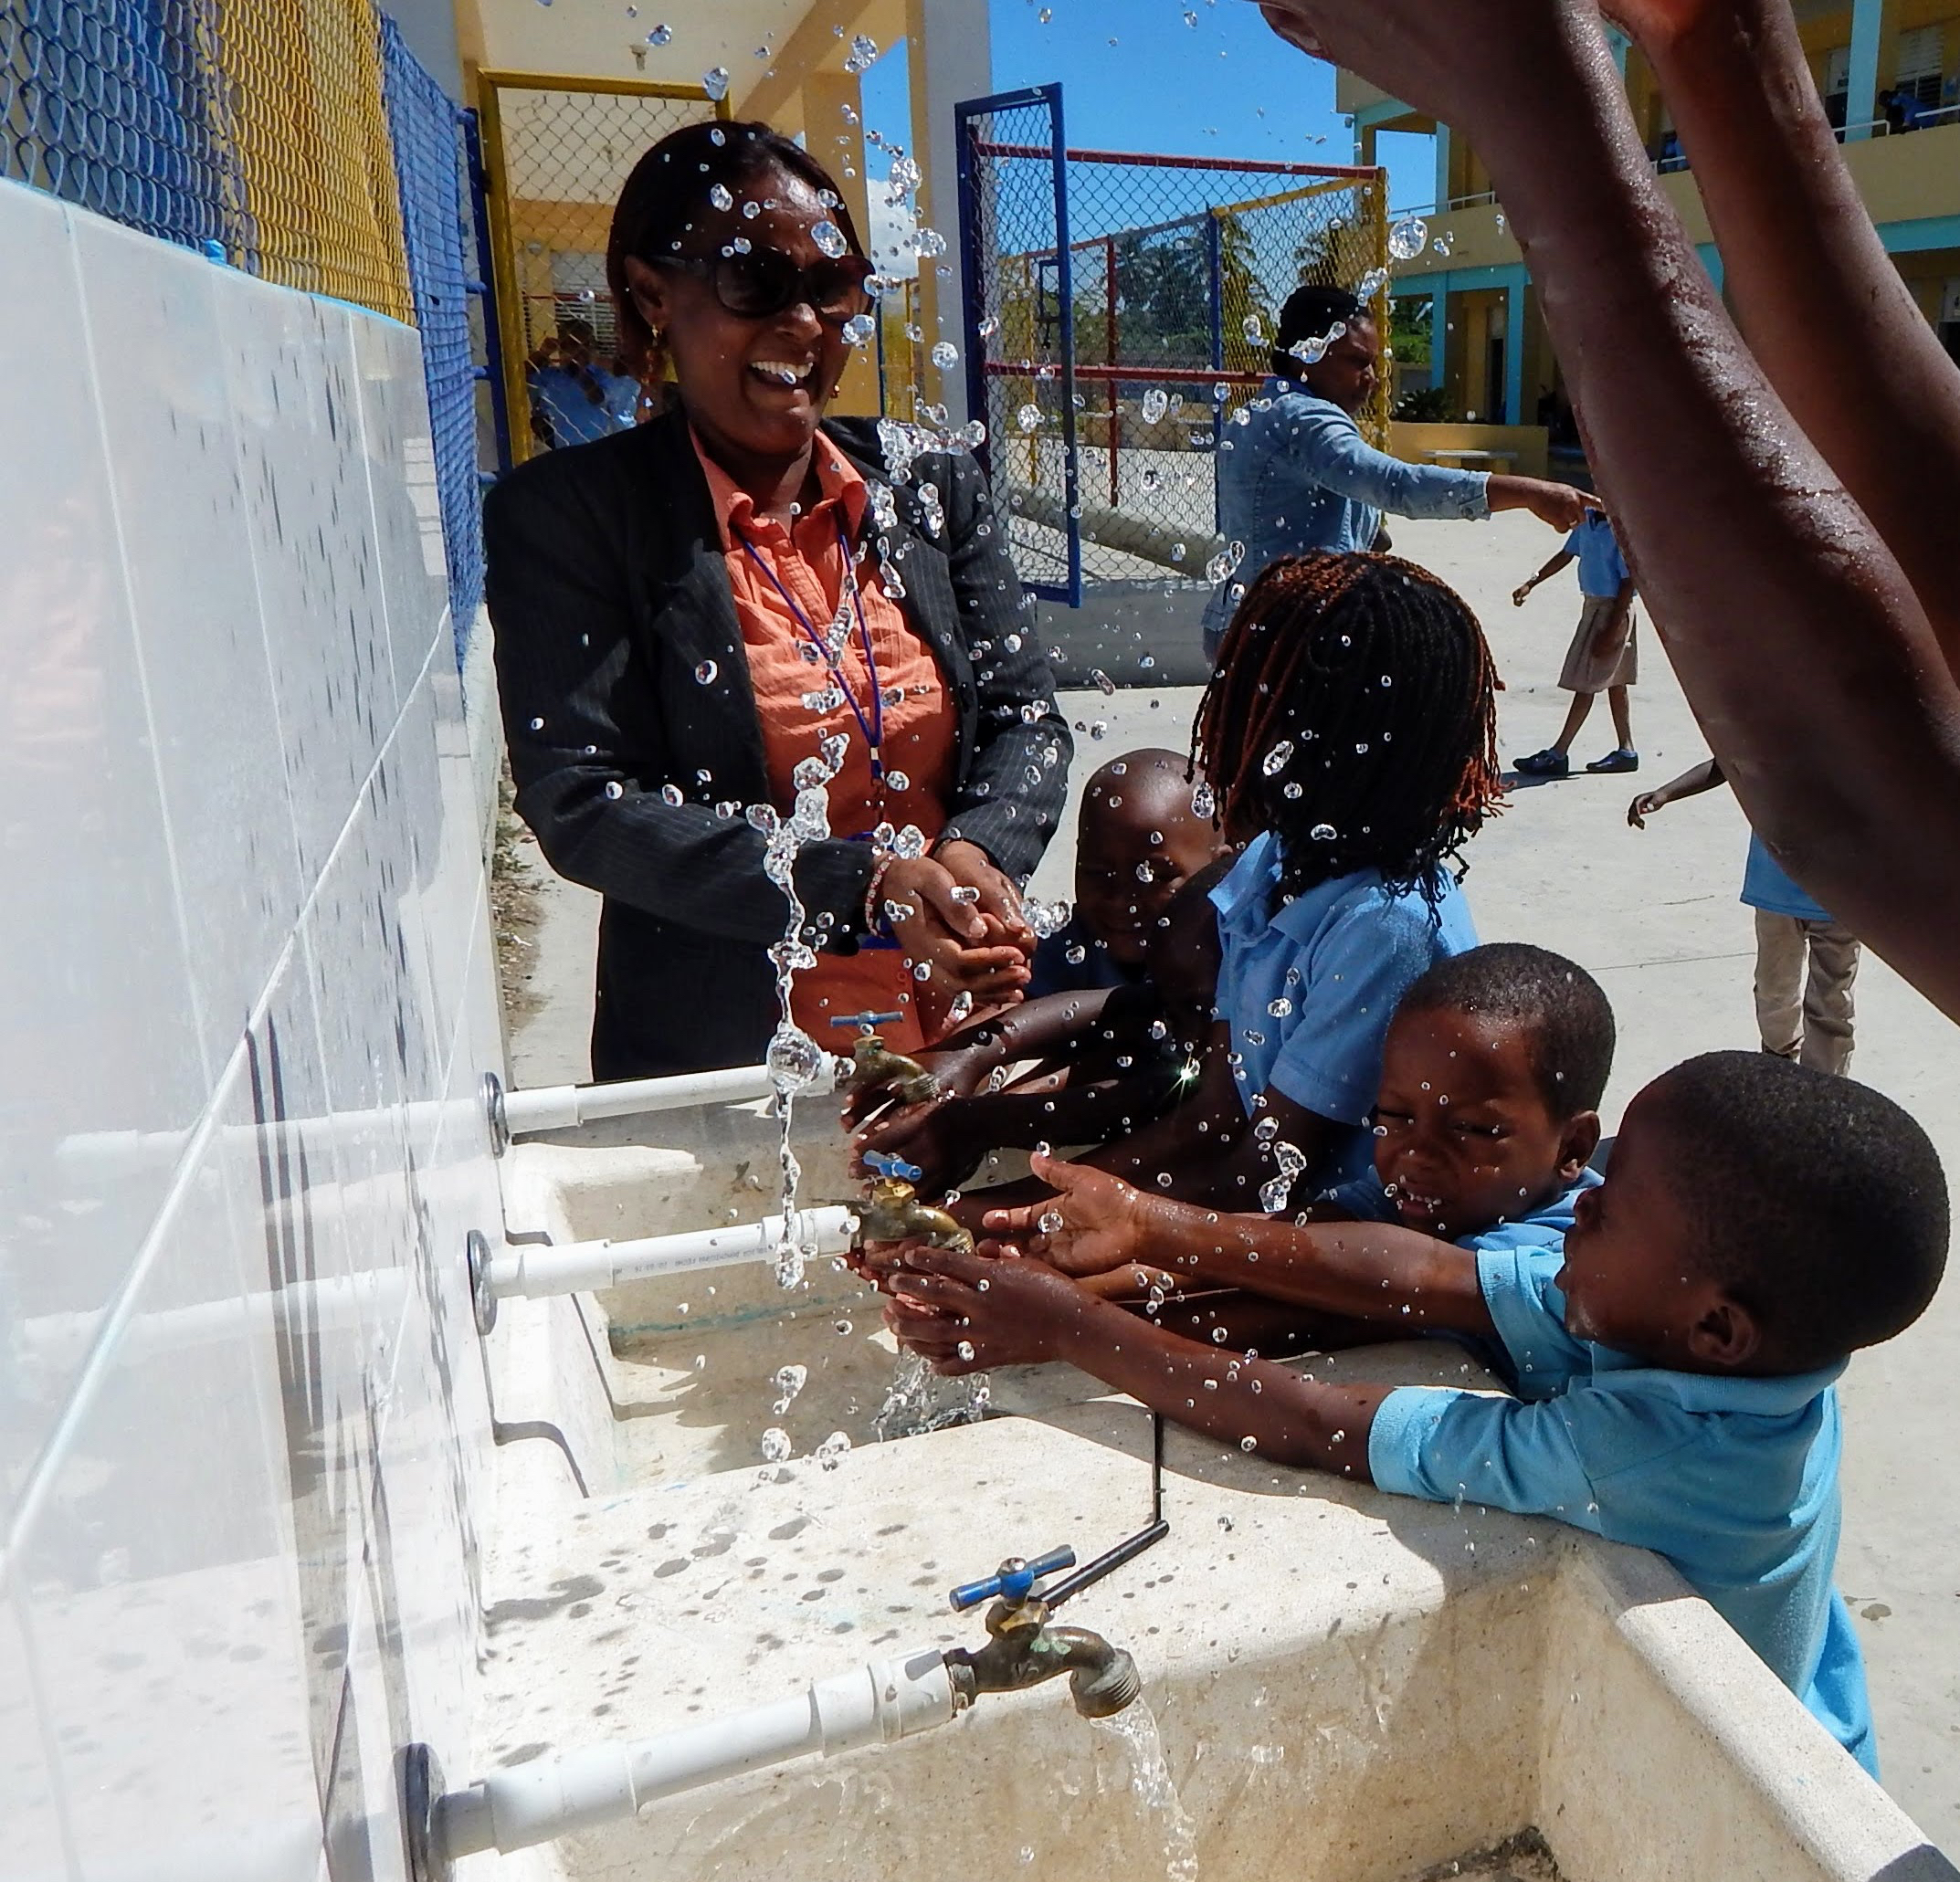 Carnival Cruise Line Partners with Clean the World to Assist in Global Soap Recycling Initiative